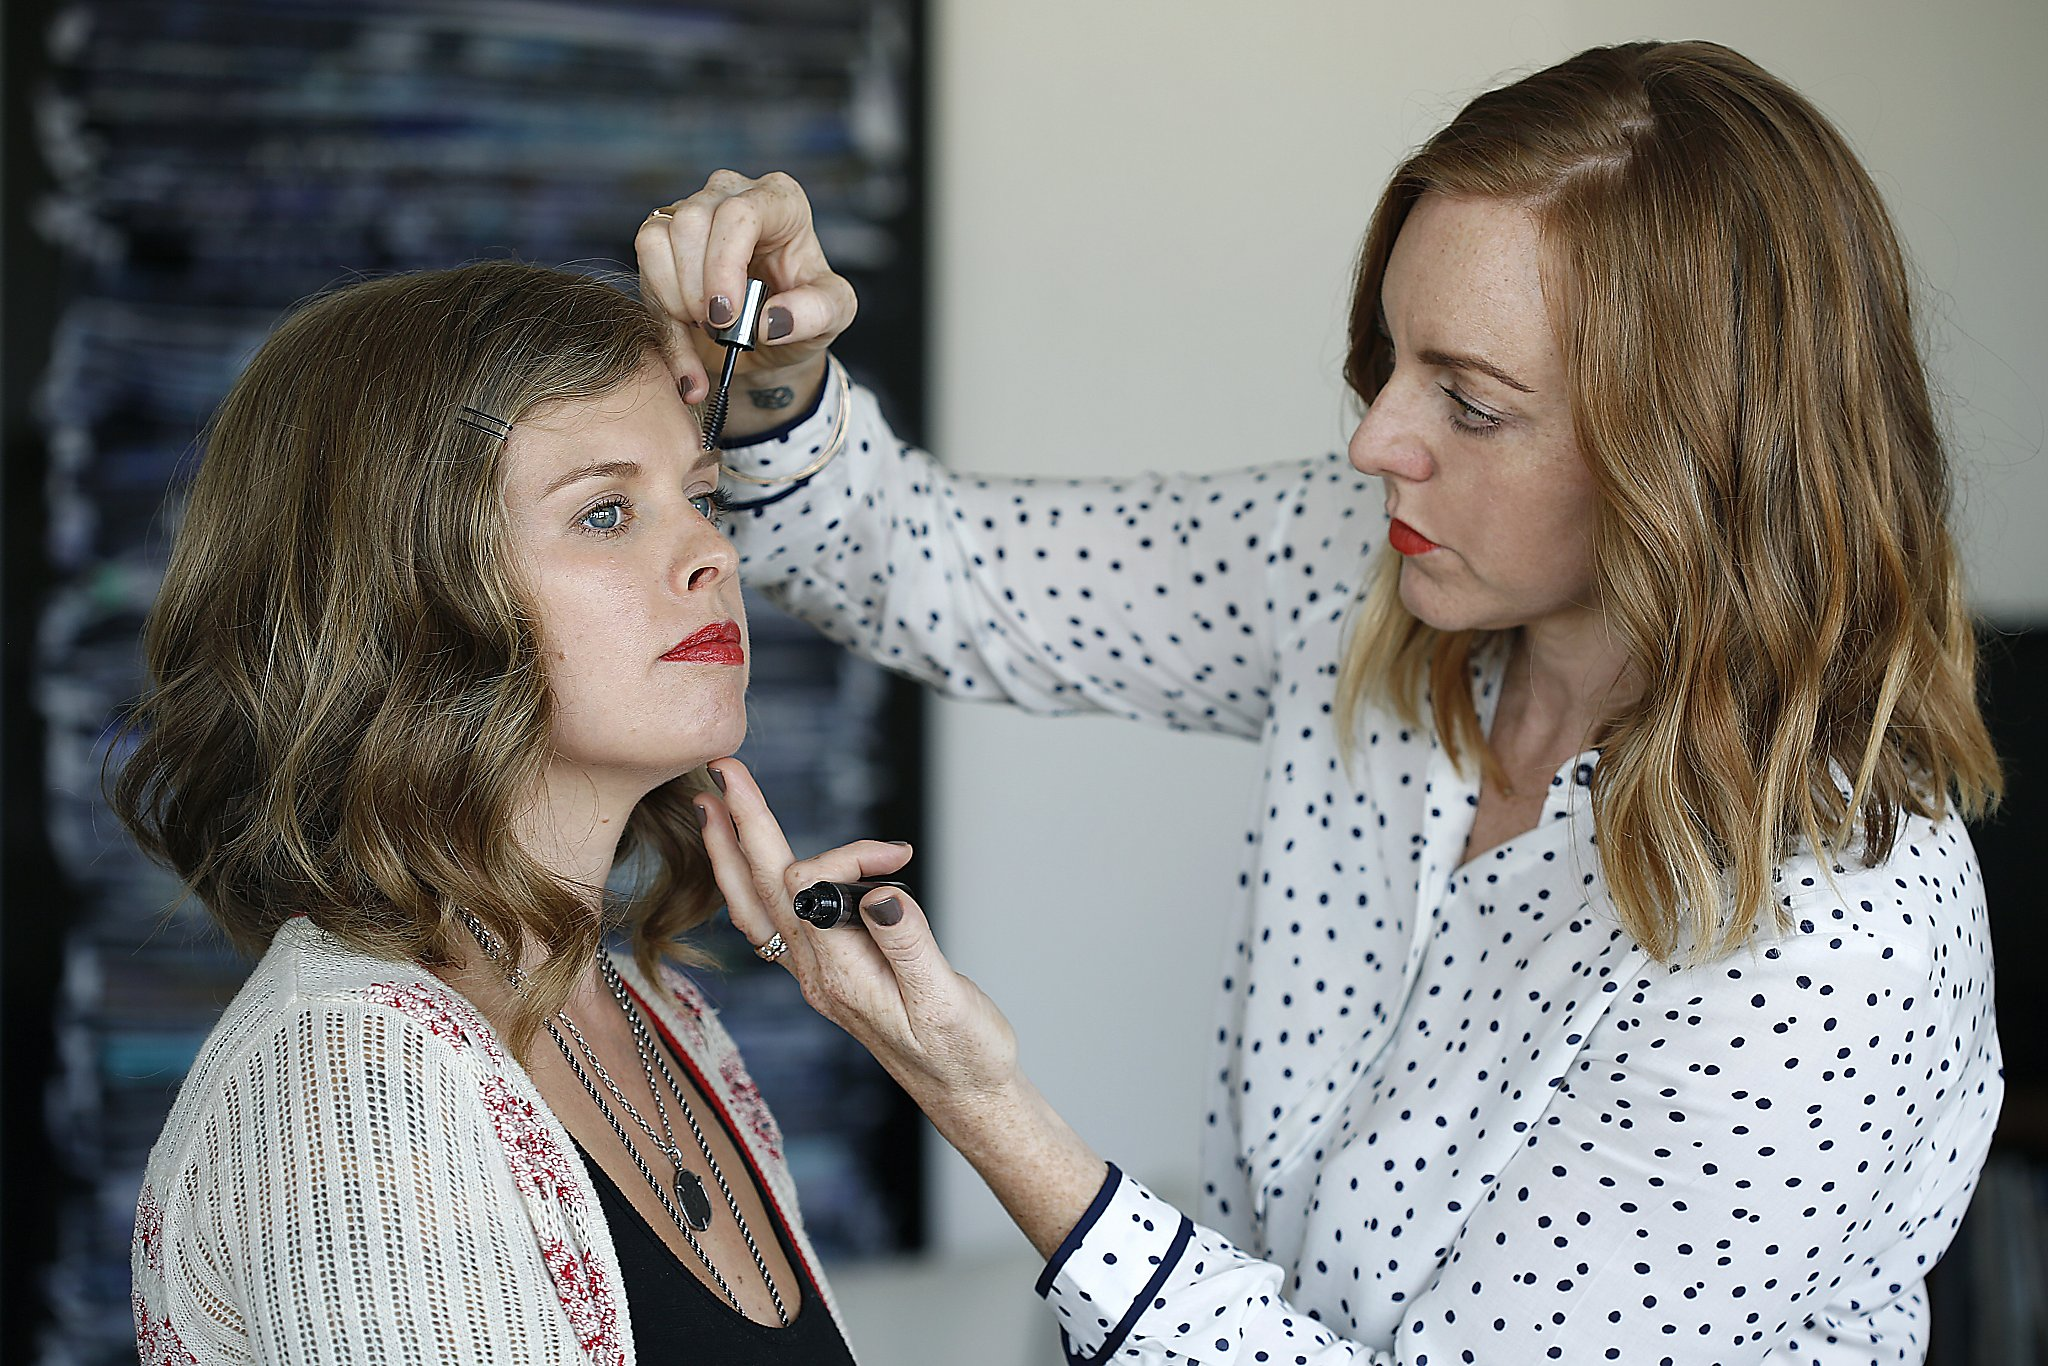 The Eyebrow Whisperer Sfchronicle